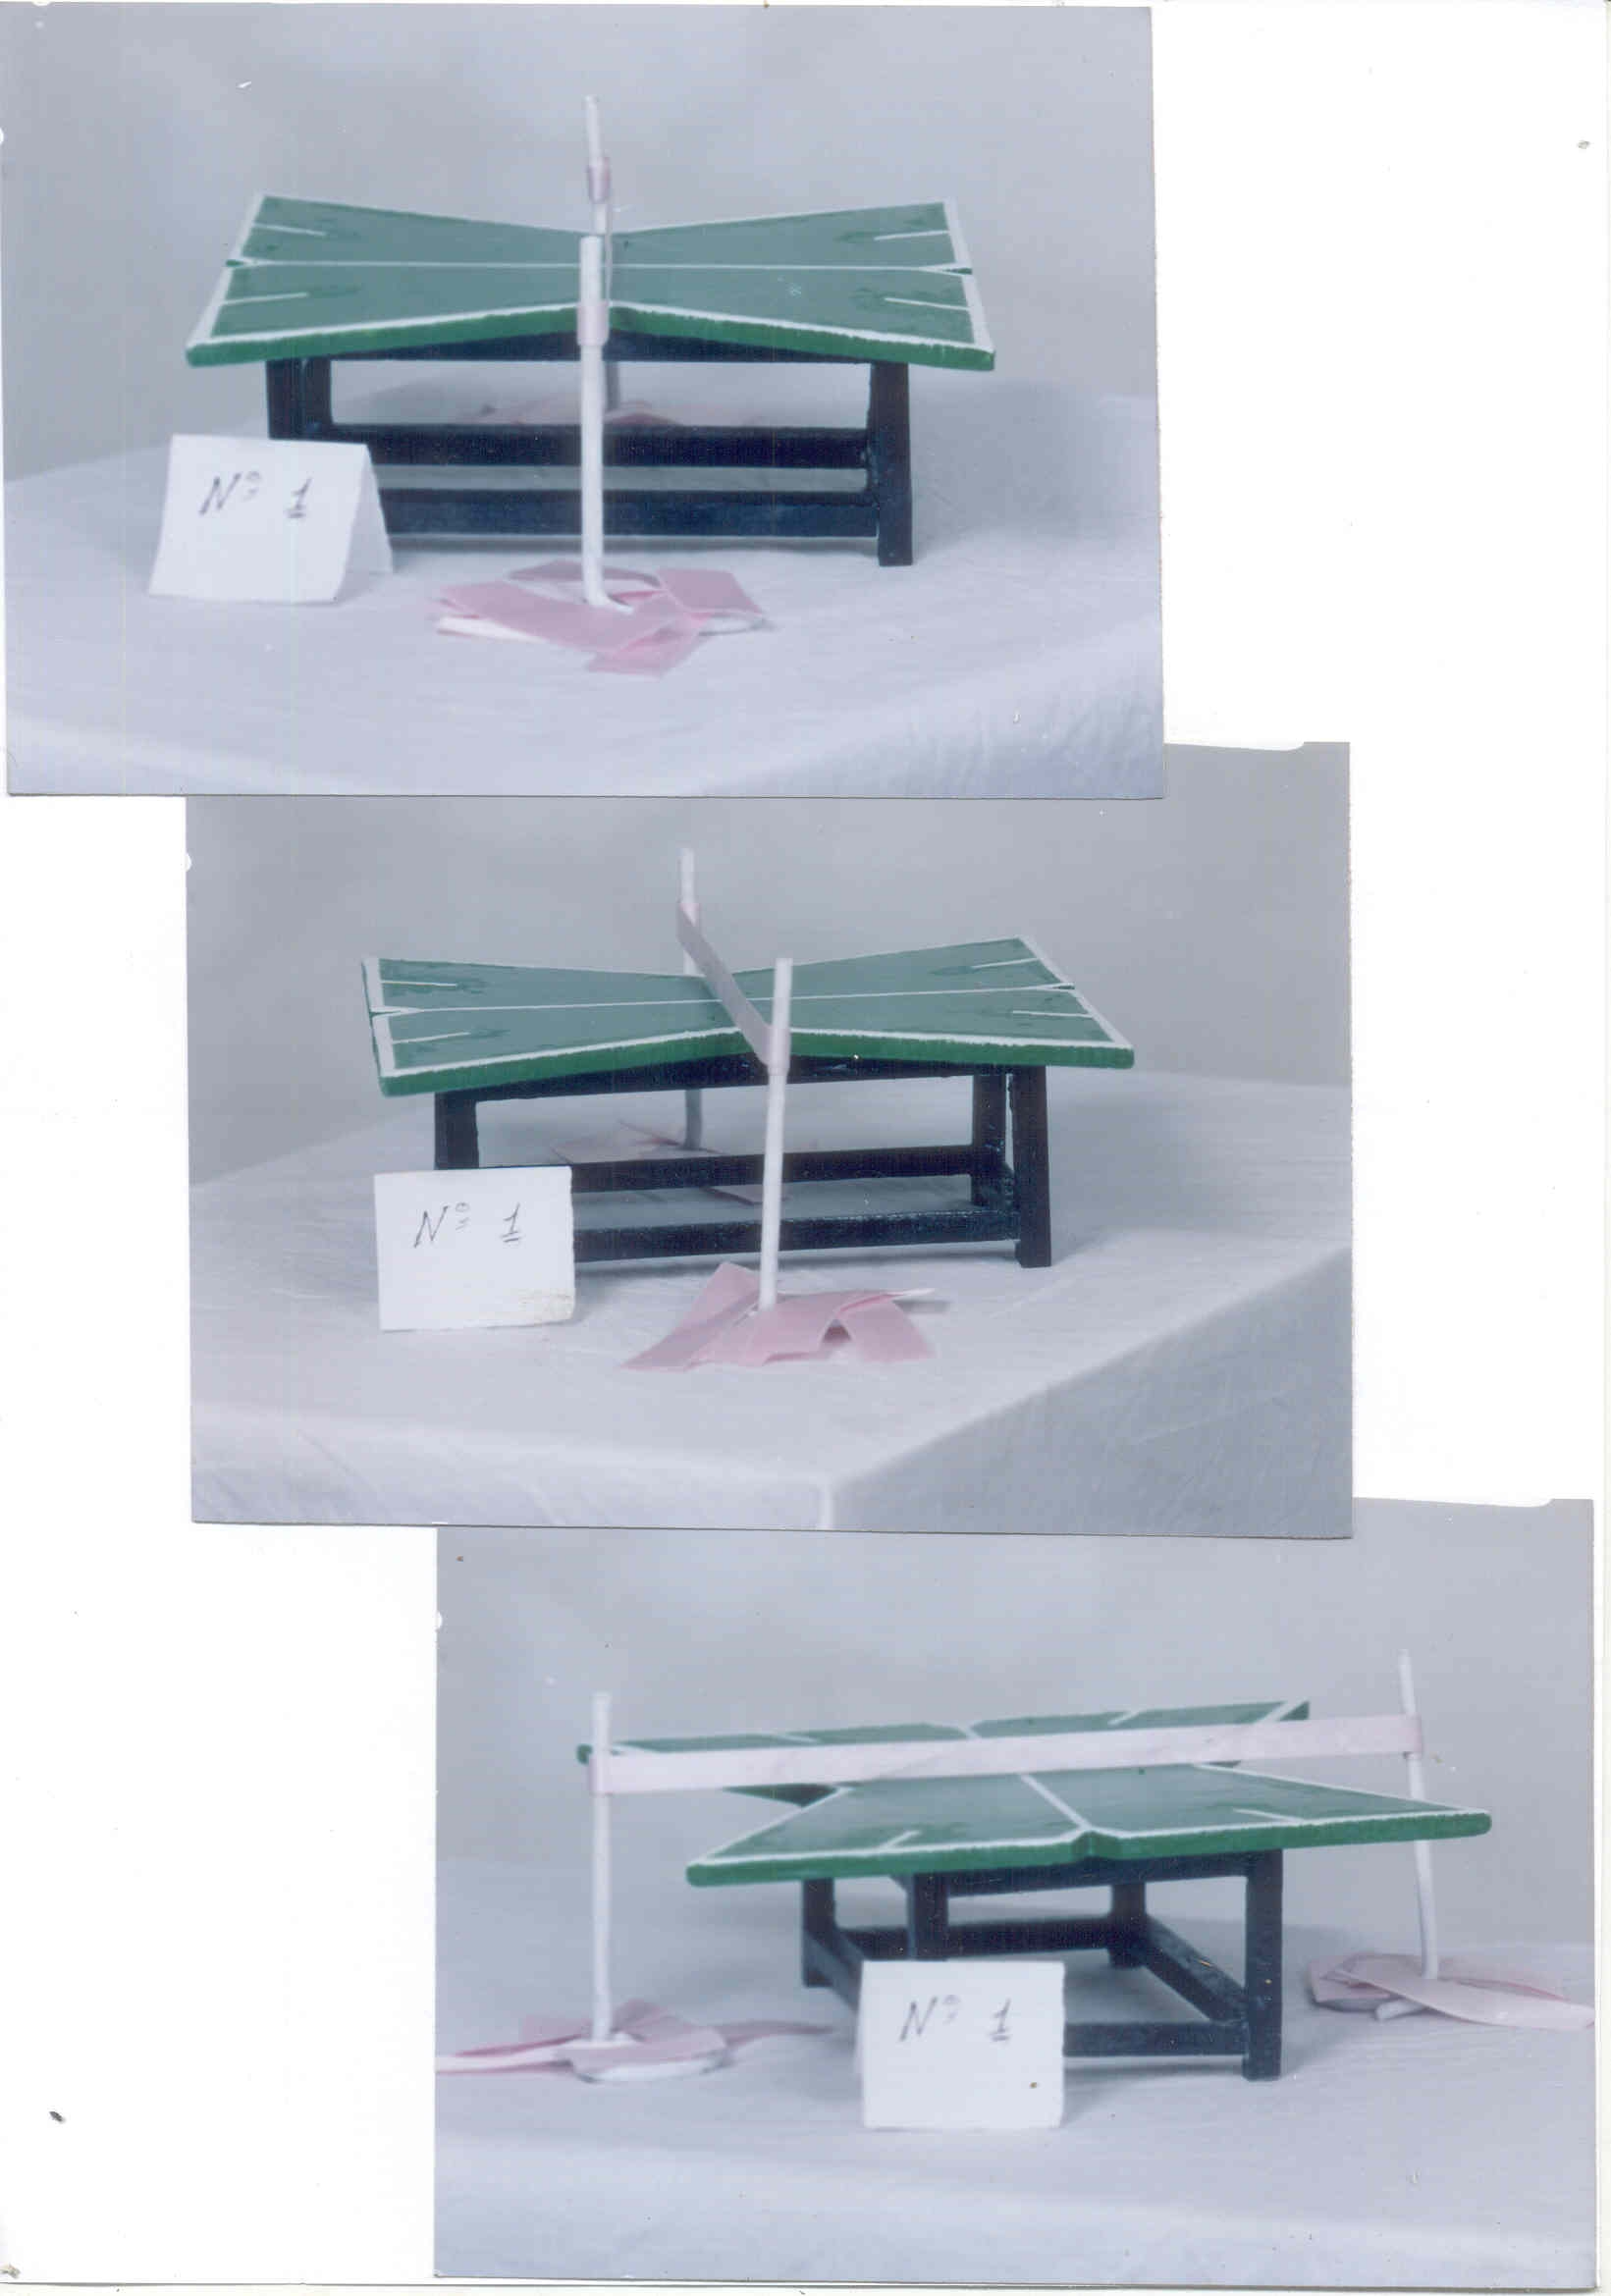 Model 2 Shows The X Shaped Table Tennis S Surface Designed And Edged With 4 Four Acute Angles At 50 Degrees